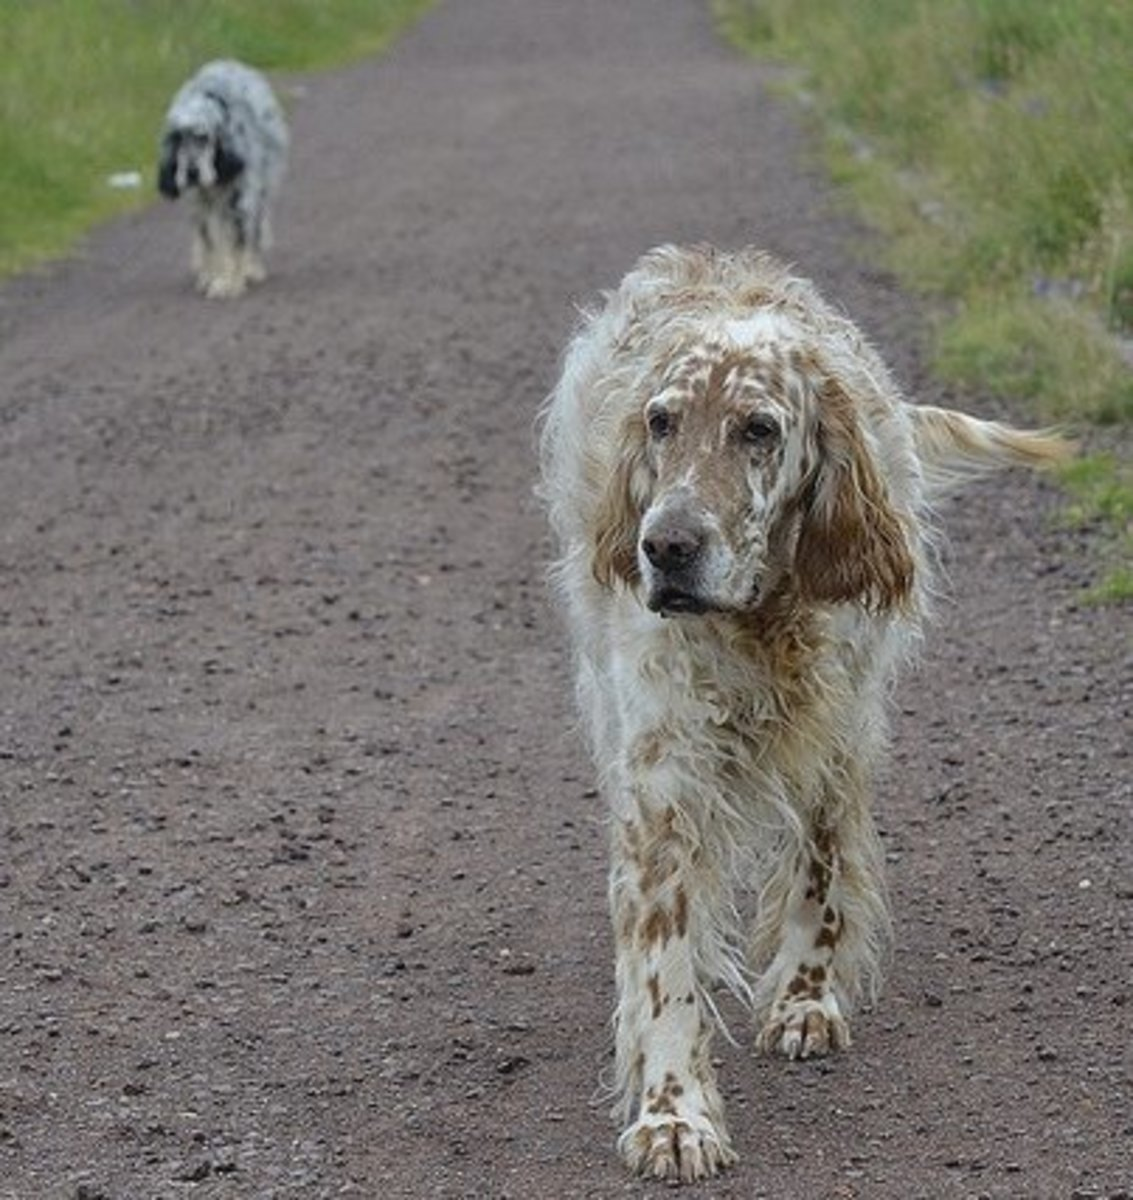 A pair of English Setters out for a stroll.